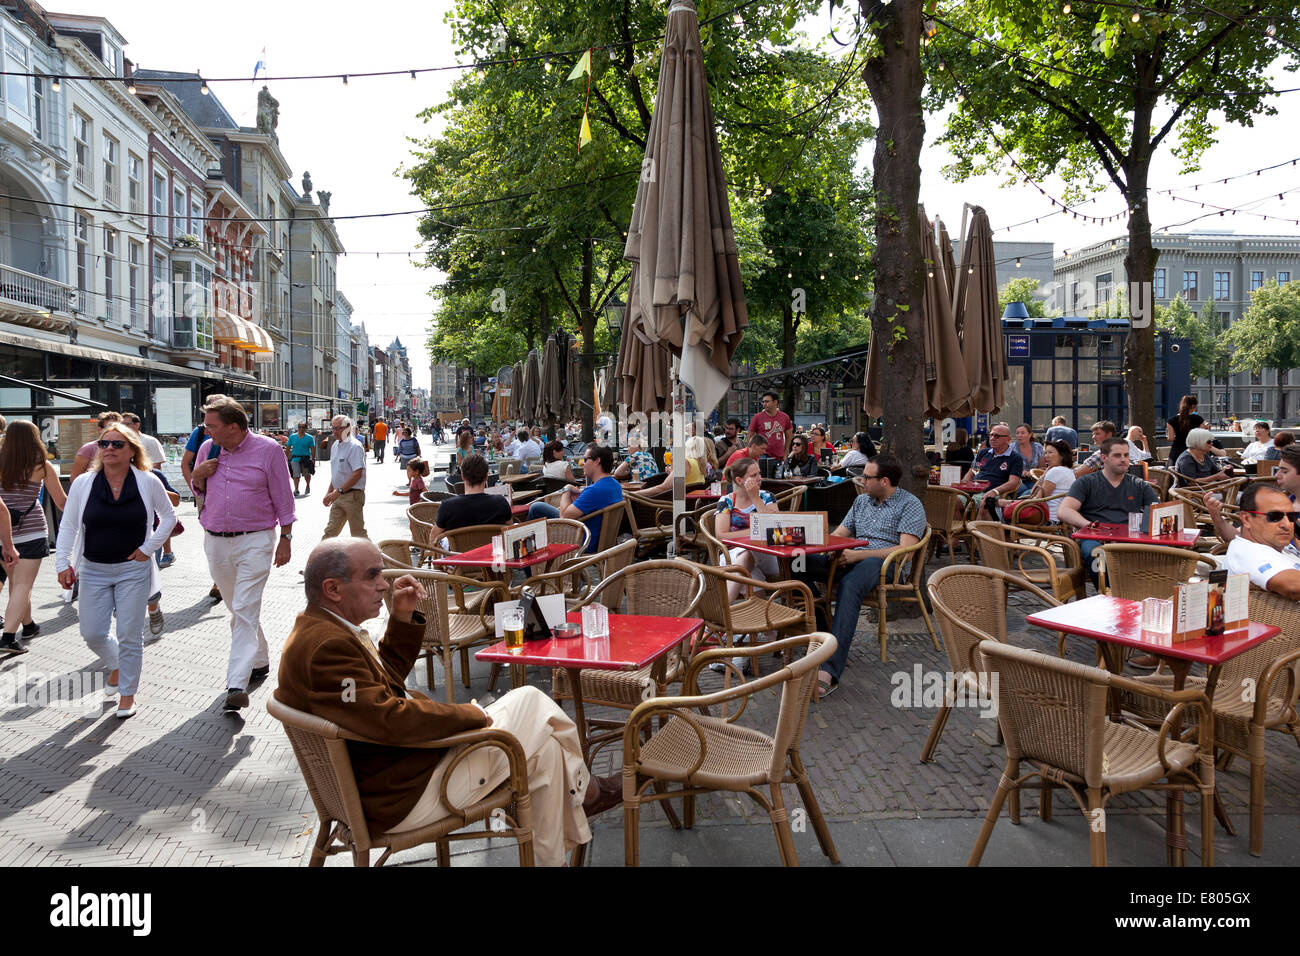 Terrace on Plein in The Hague,Holland - Stock Image